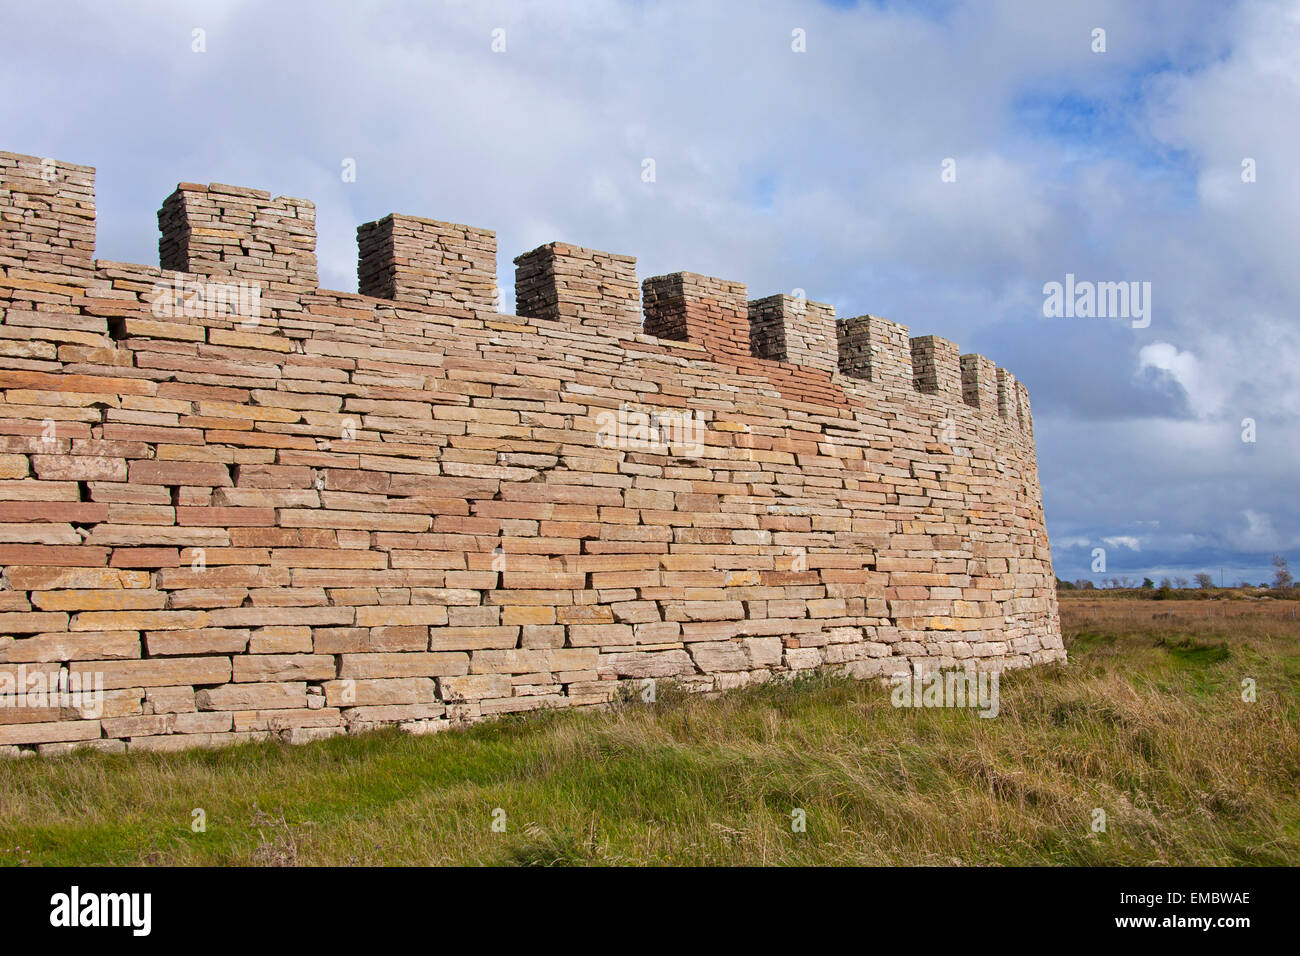 Defensive dry stone wall with crenellation of the Eketorp Castle, Iron Age fort in southeastern Öland, Sweden - Stock Image